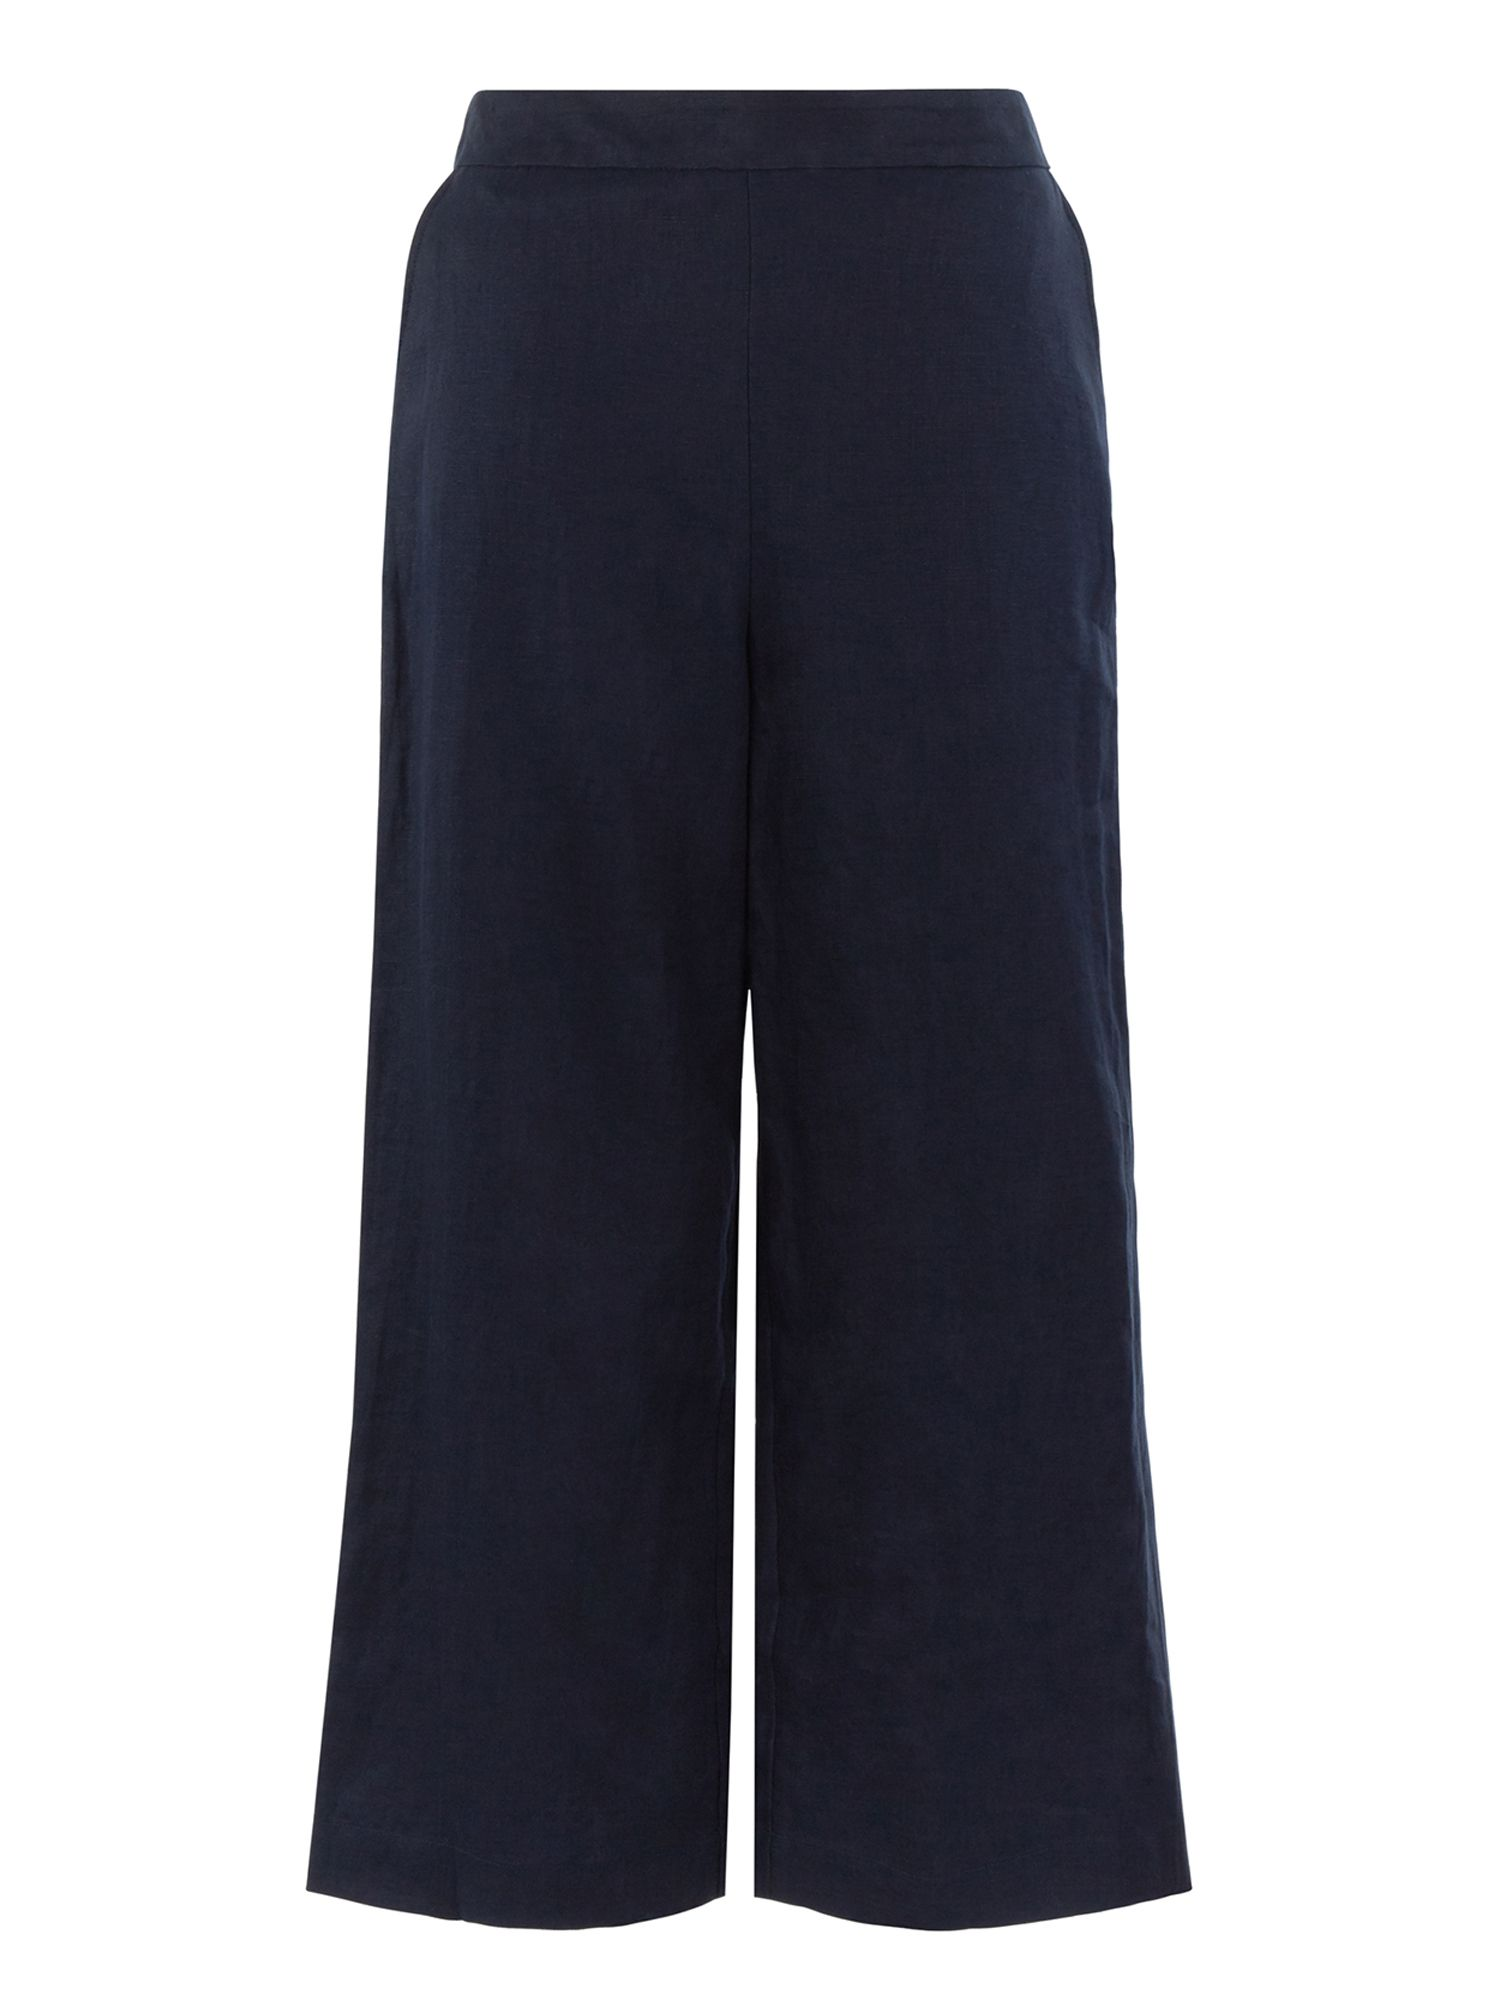 Hobbs Anise Crop Trouser, Blue